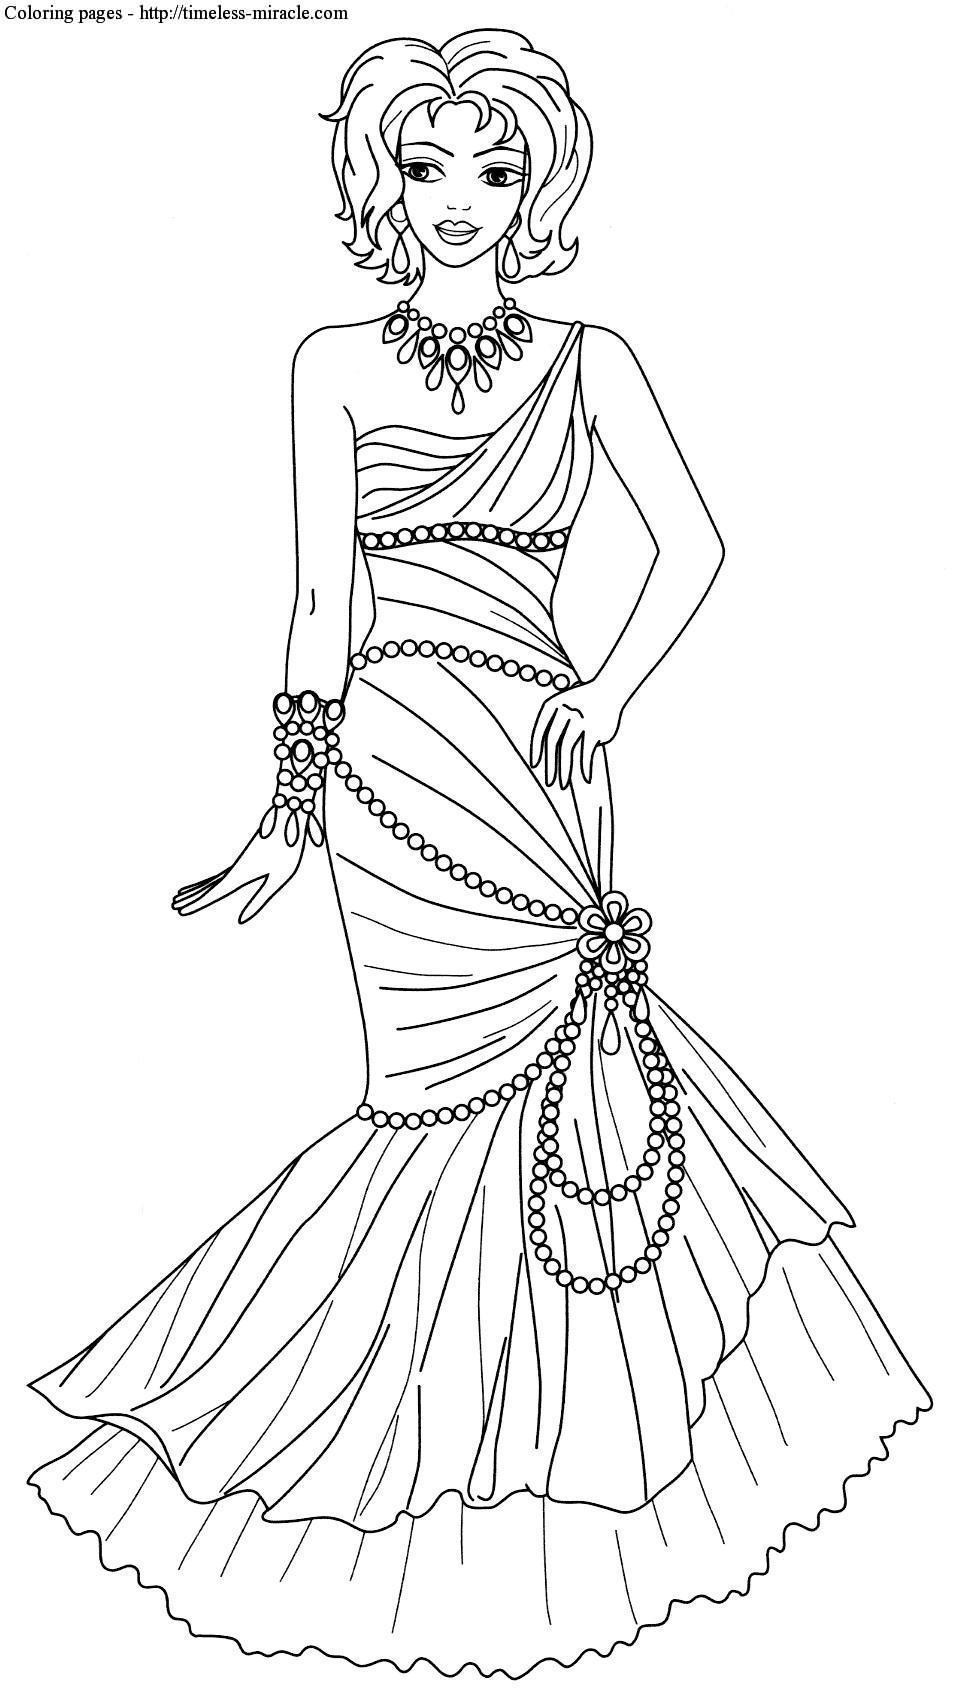 Cool Adult Coloring Pages  Adult Cool Gay And